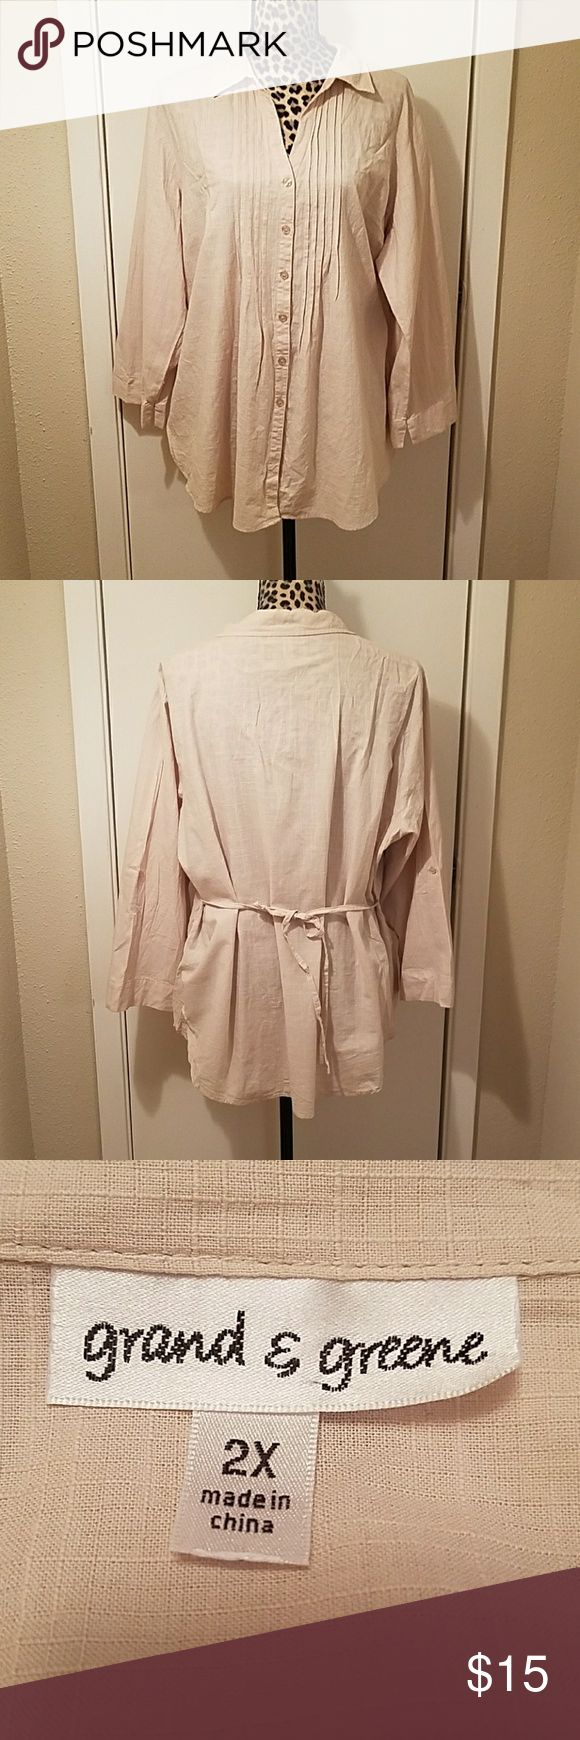 Grand and Greene Tan Tuxedo Front Button Down Top Item is in excellent condition. No rips, stains, snags or tears. Great neutral color to go with any outfit. Sleeves can be pinned up and there is a tie back to accentuate a tiny waist. Grand and Greene Tops